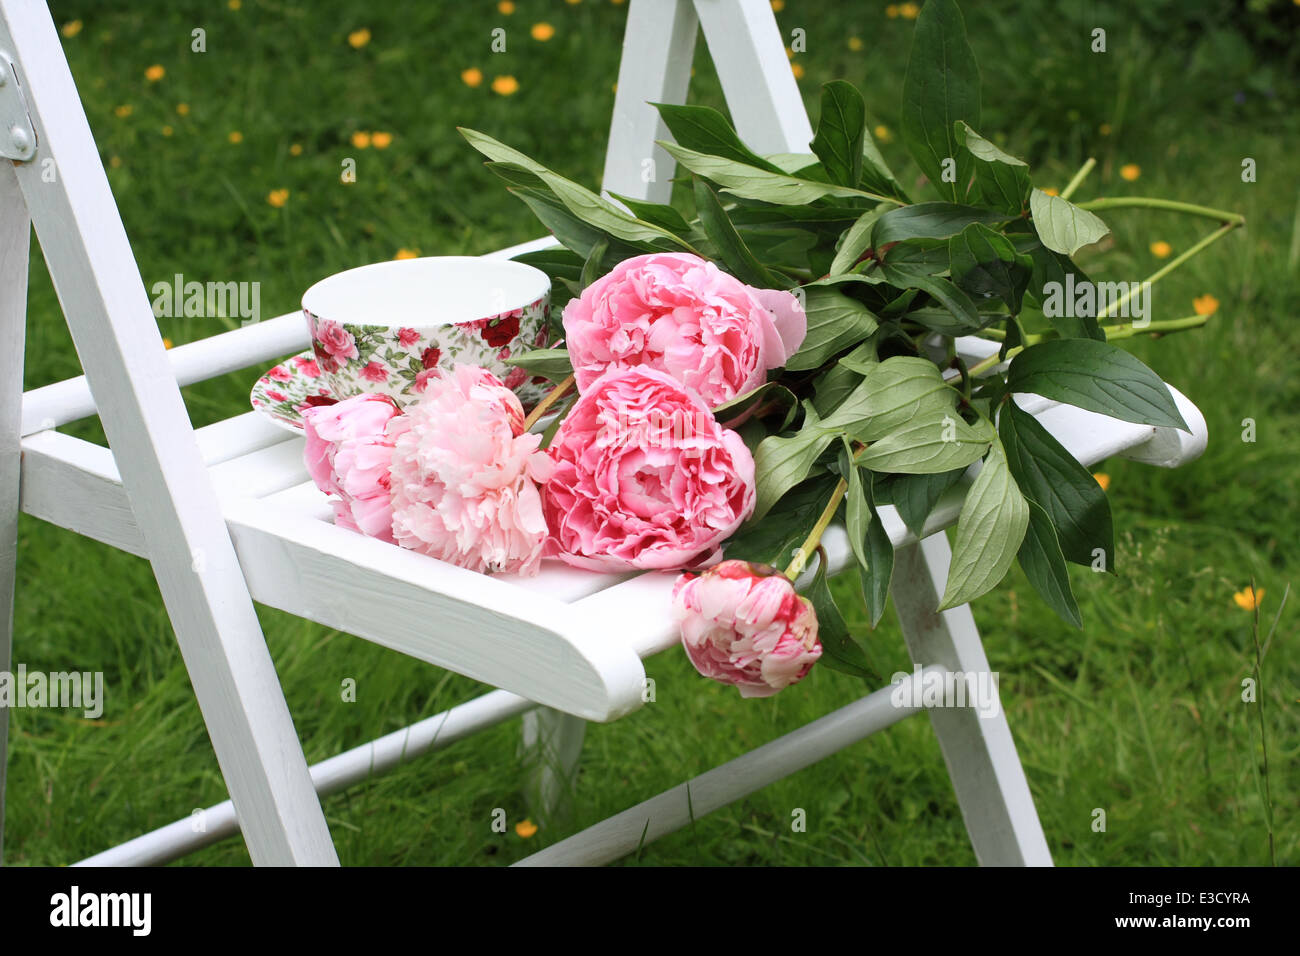 Pink peonies on white wooden chair in the garden - Stock Image